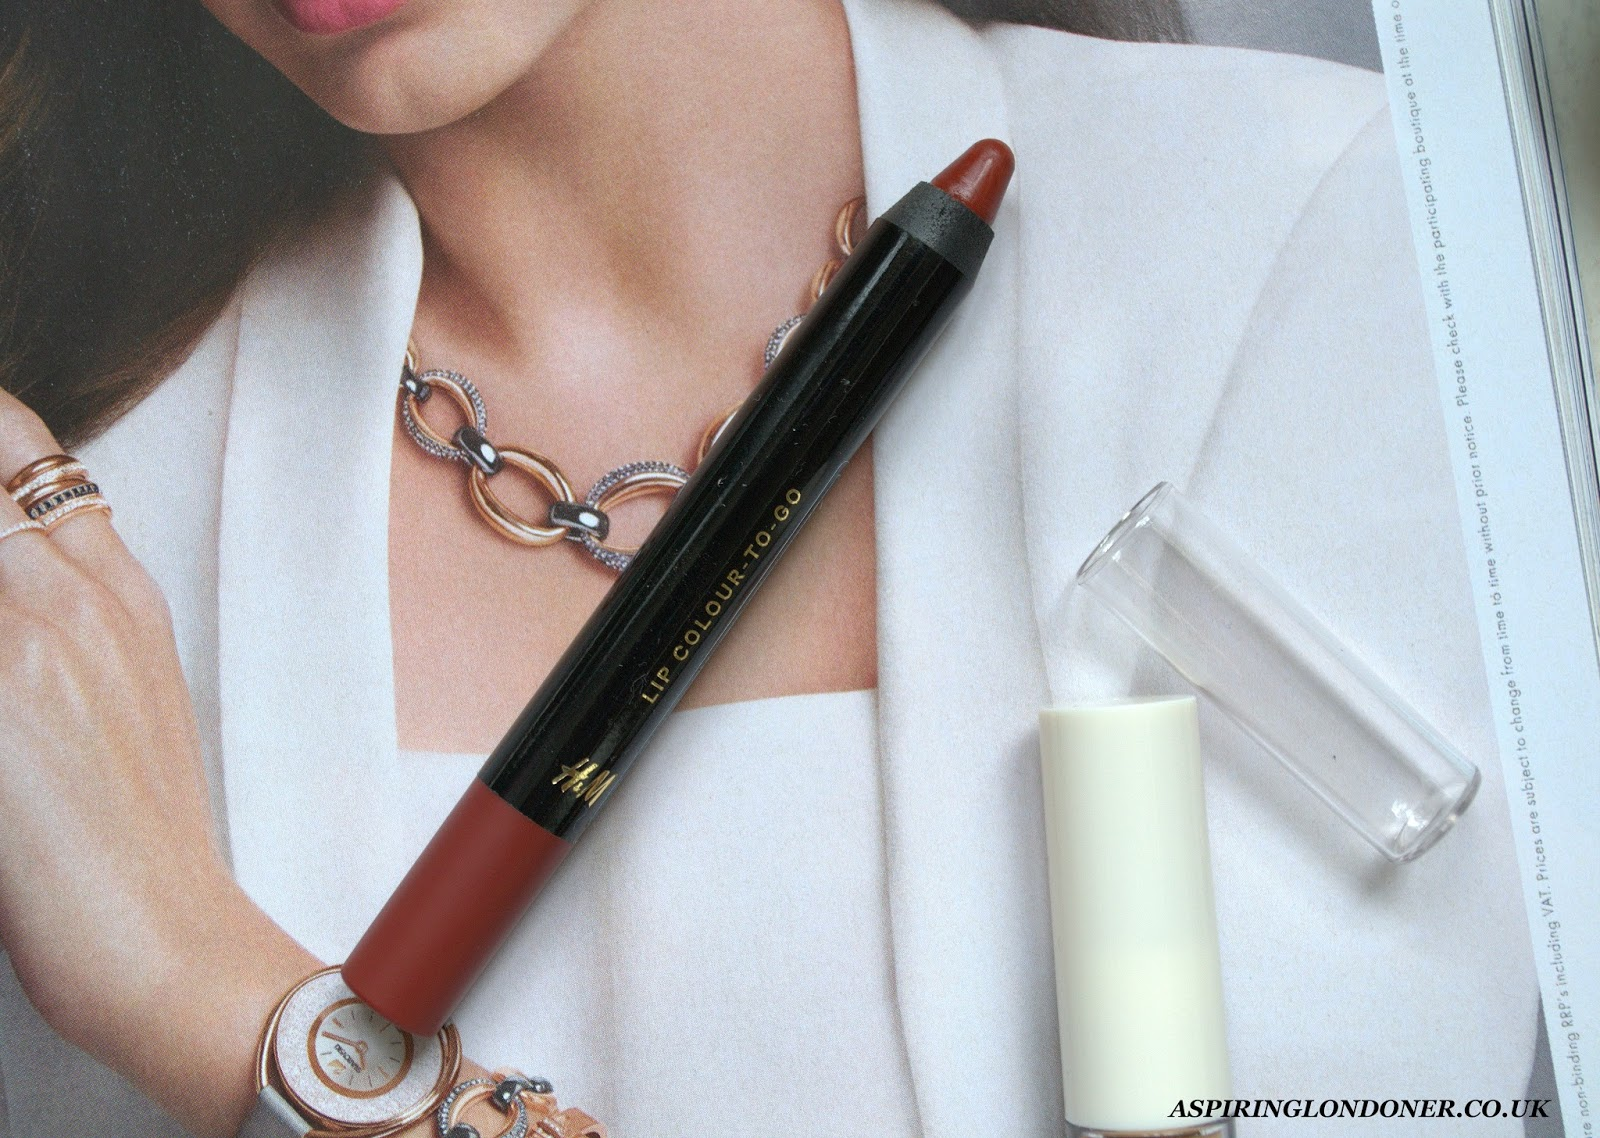 H&M Beauty Lip Colour To Go Curtain Call Review Swatch - Aspiring Londoner